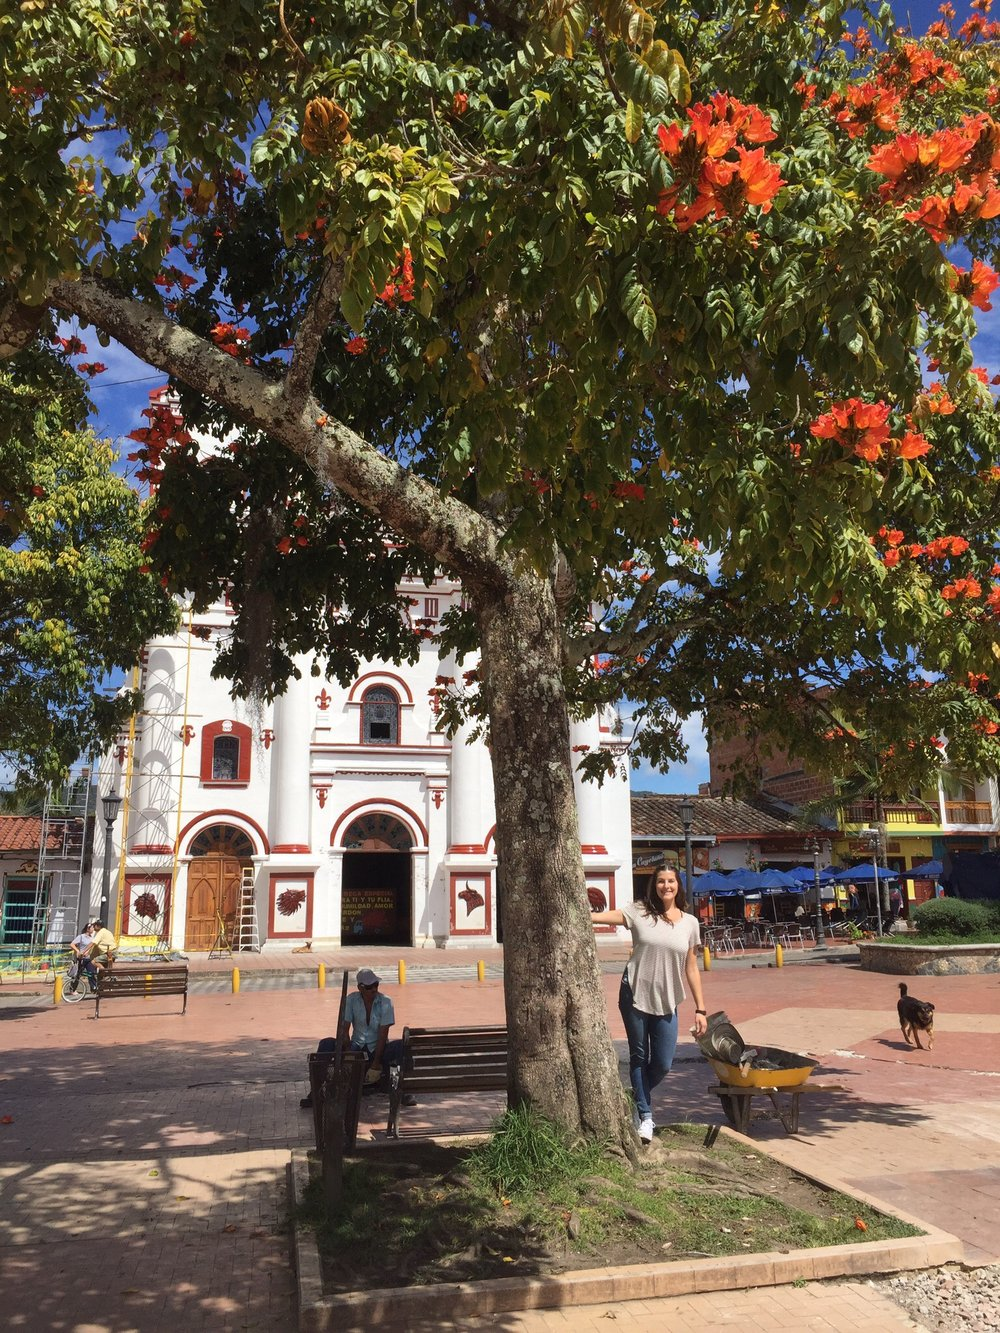 The town square at Guatape.